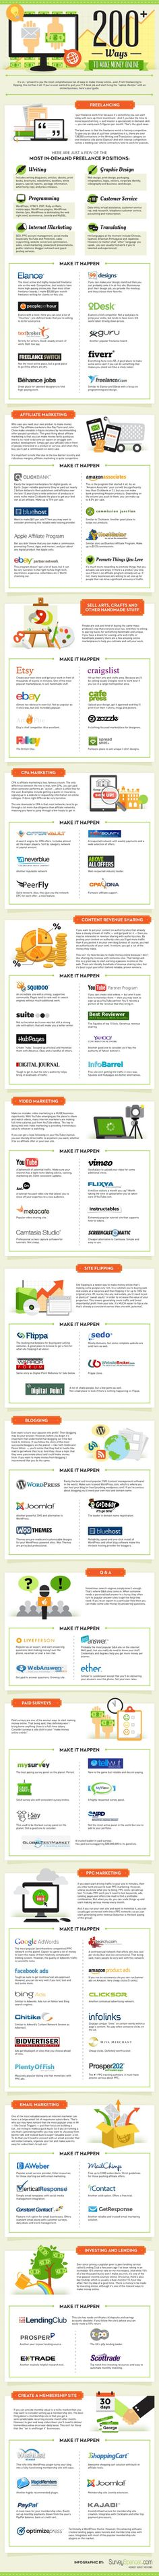 200 Small Business You Can Start Online -